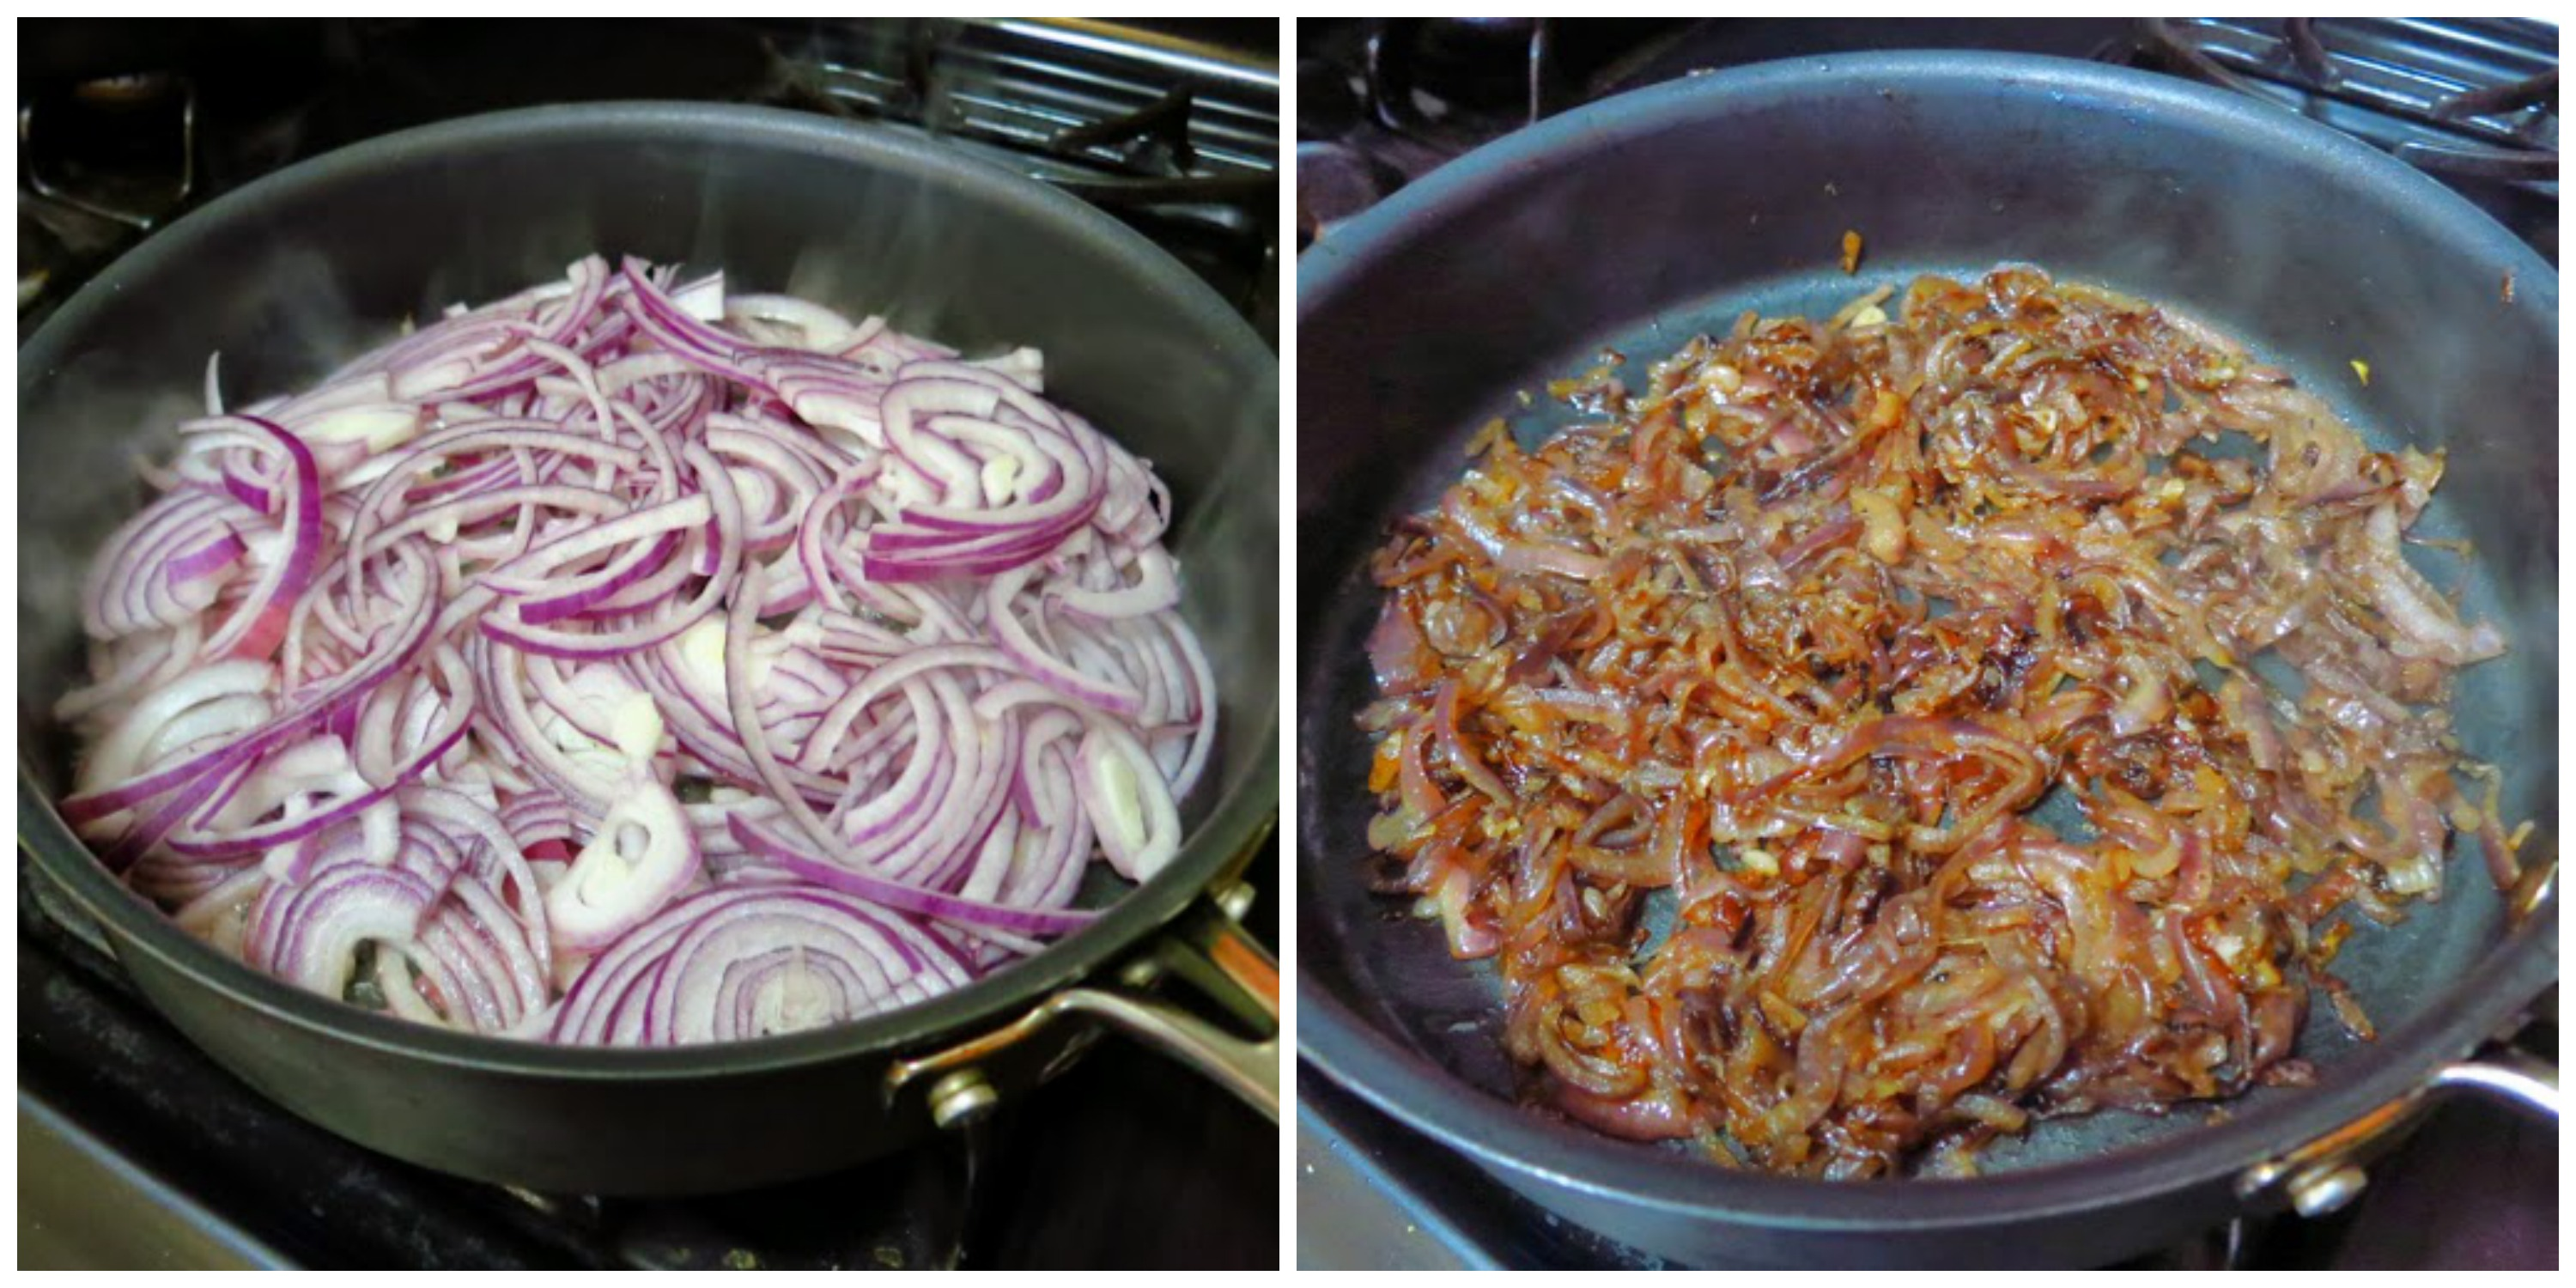 Caramelized Onions Before and After